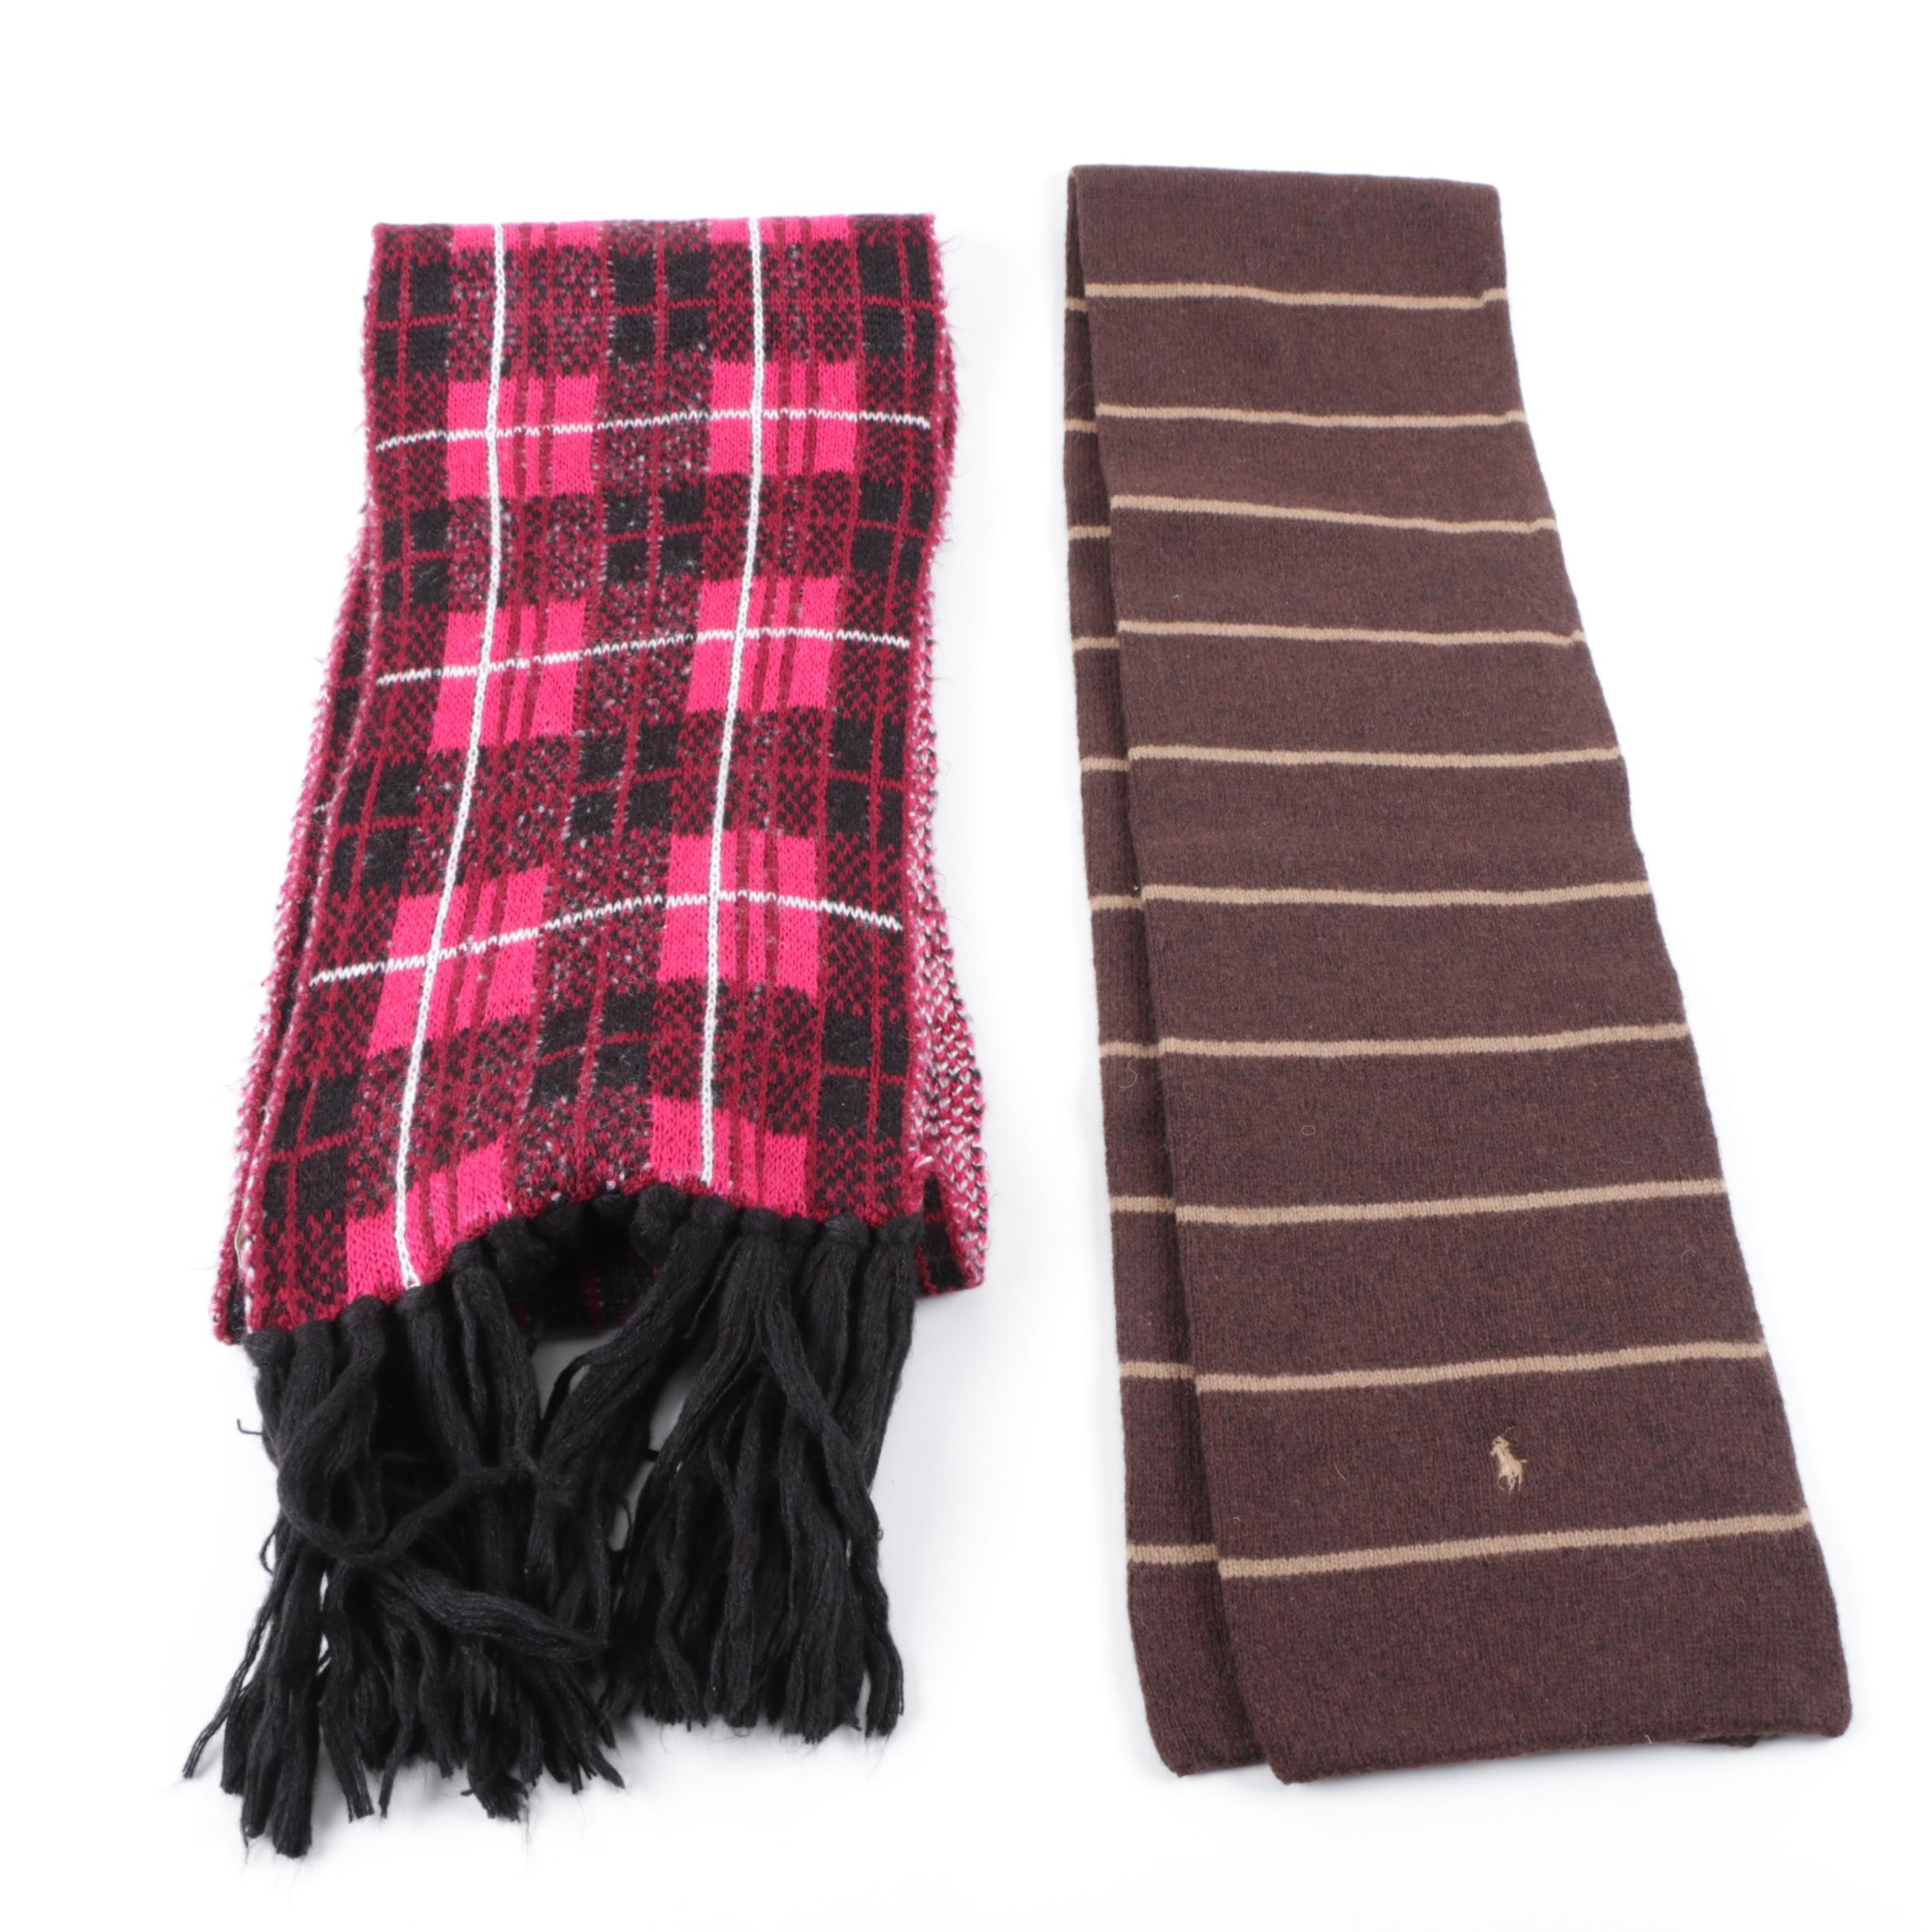 Winter Scarves Including Polo Ralph Lauren and Kate Spade New York